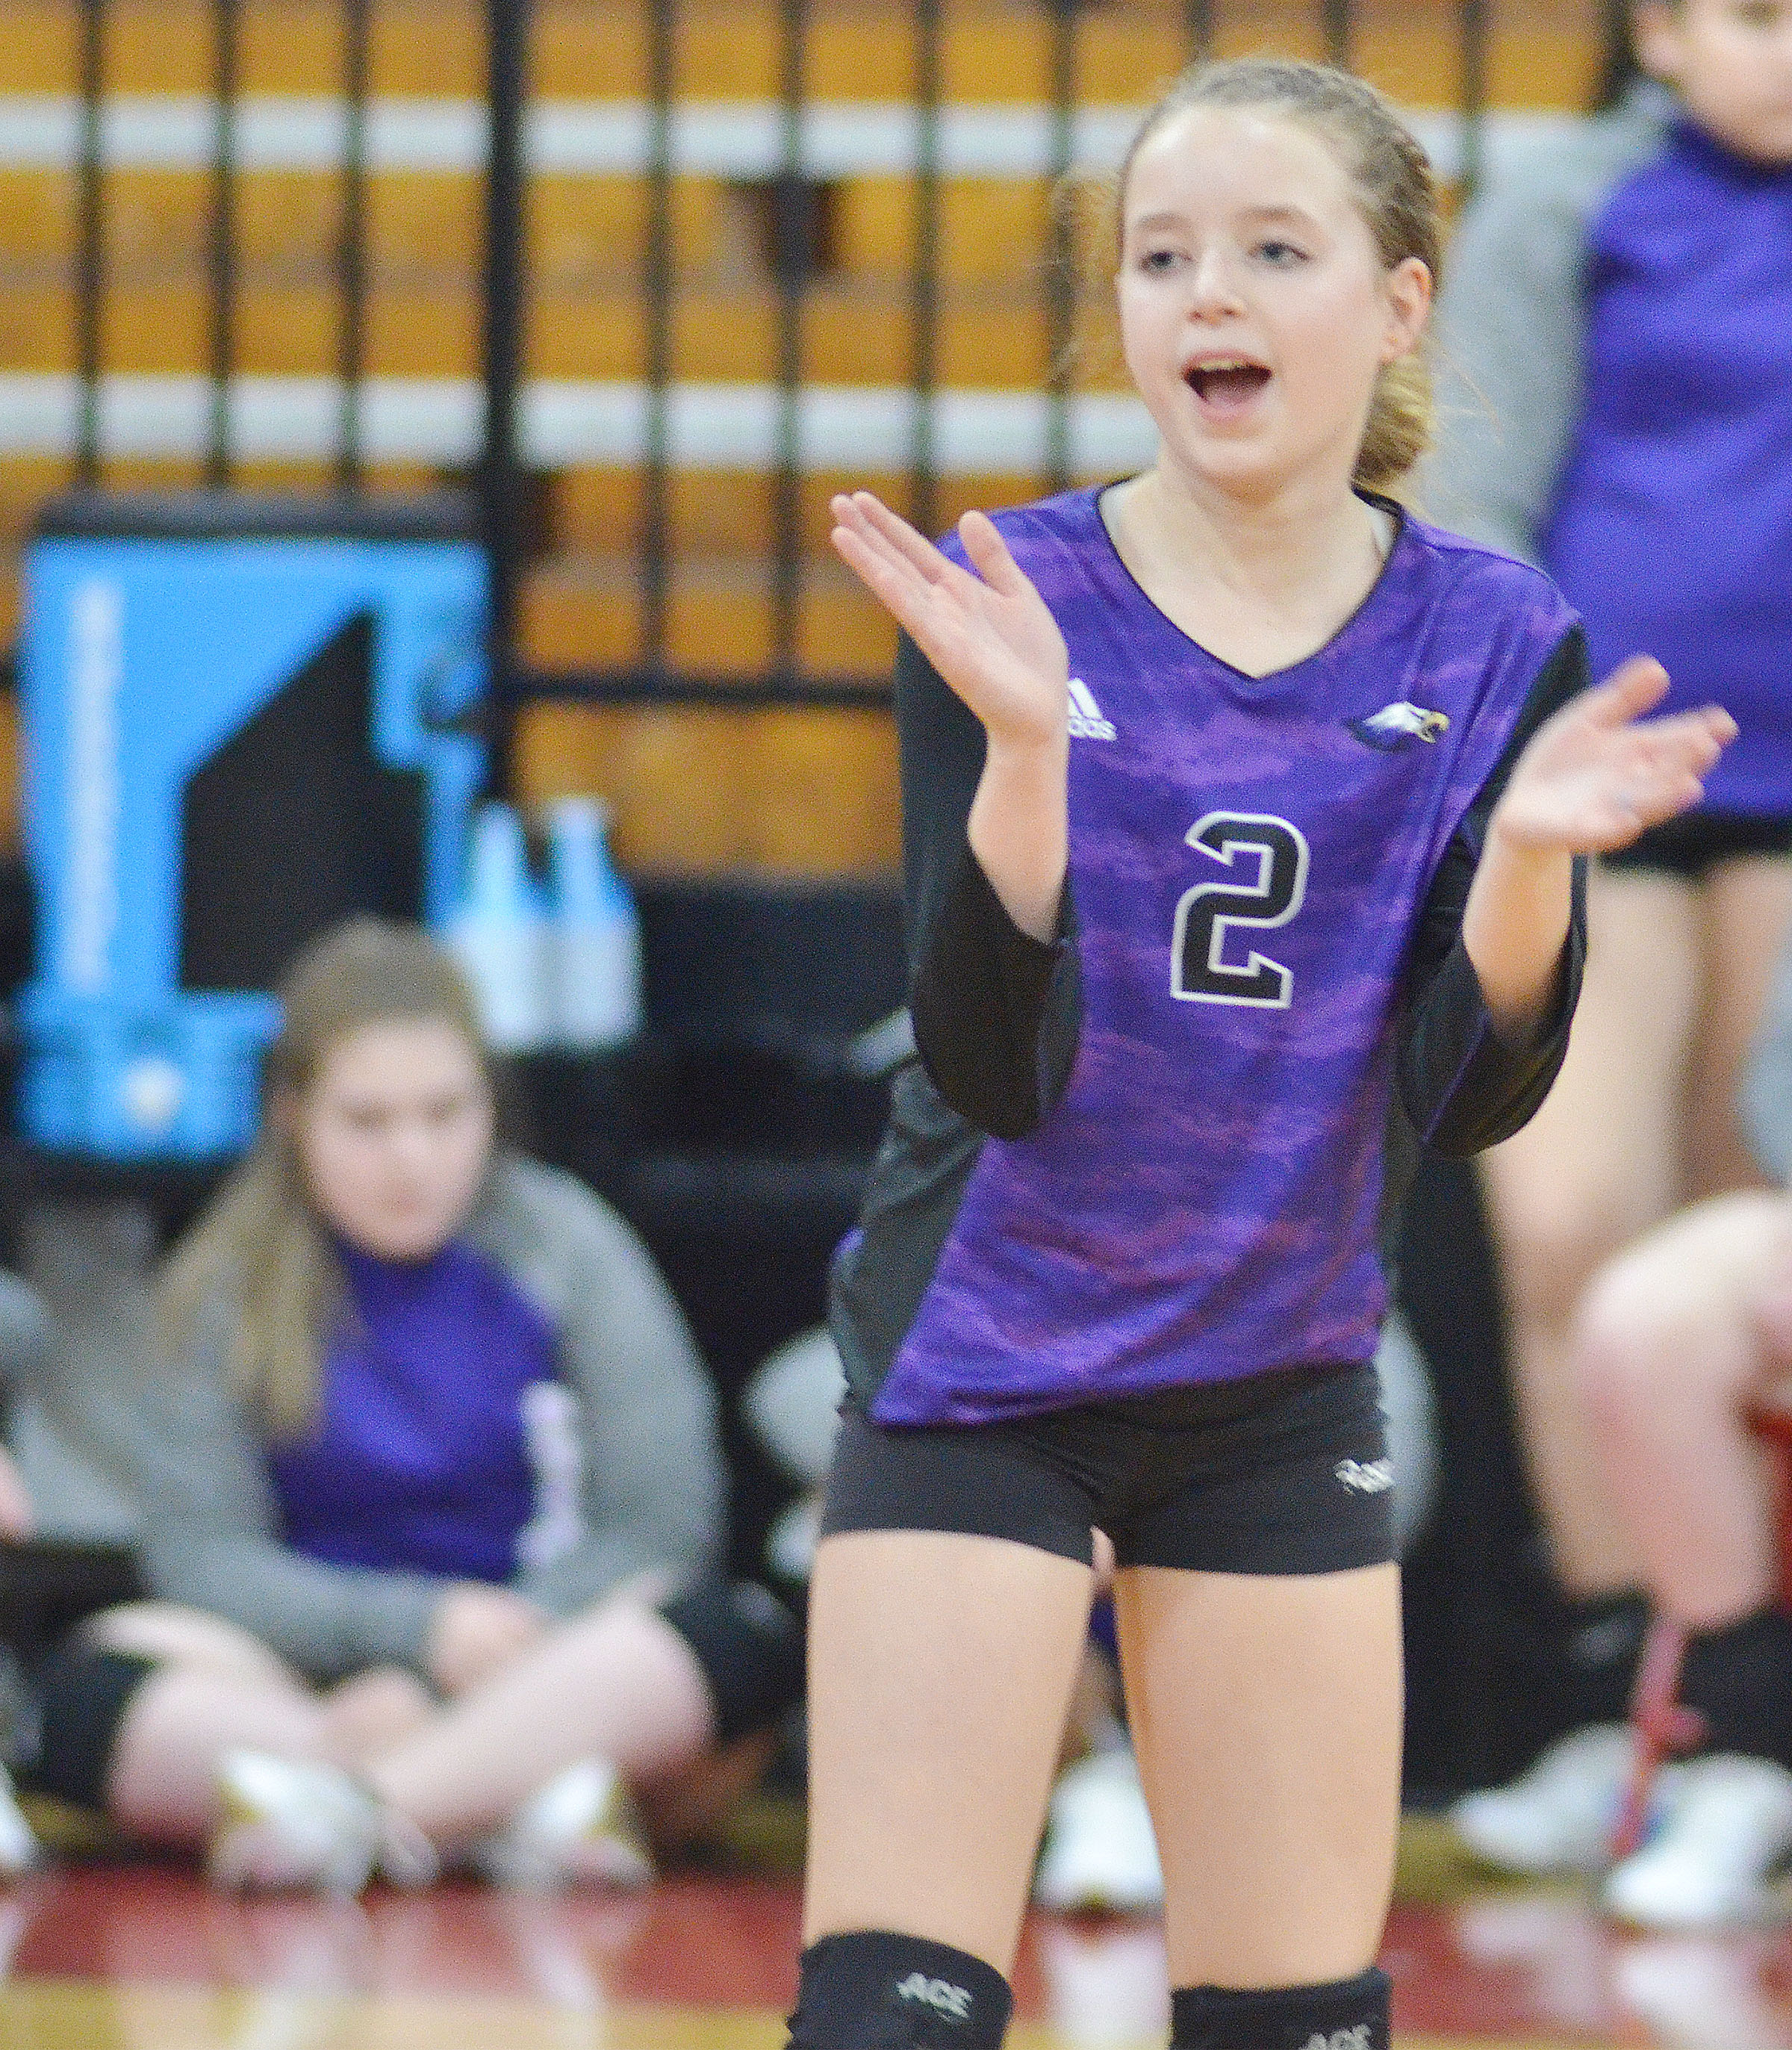 CMS seventh-grader Rylee Petett cheers after a point.